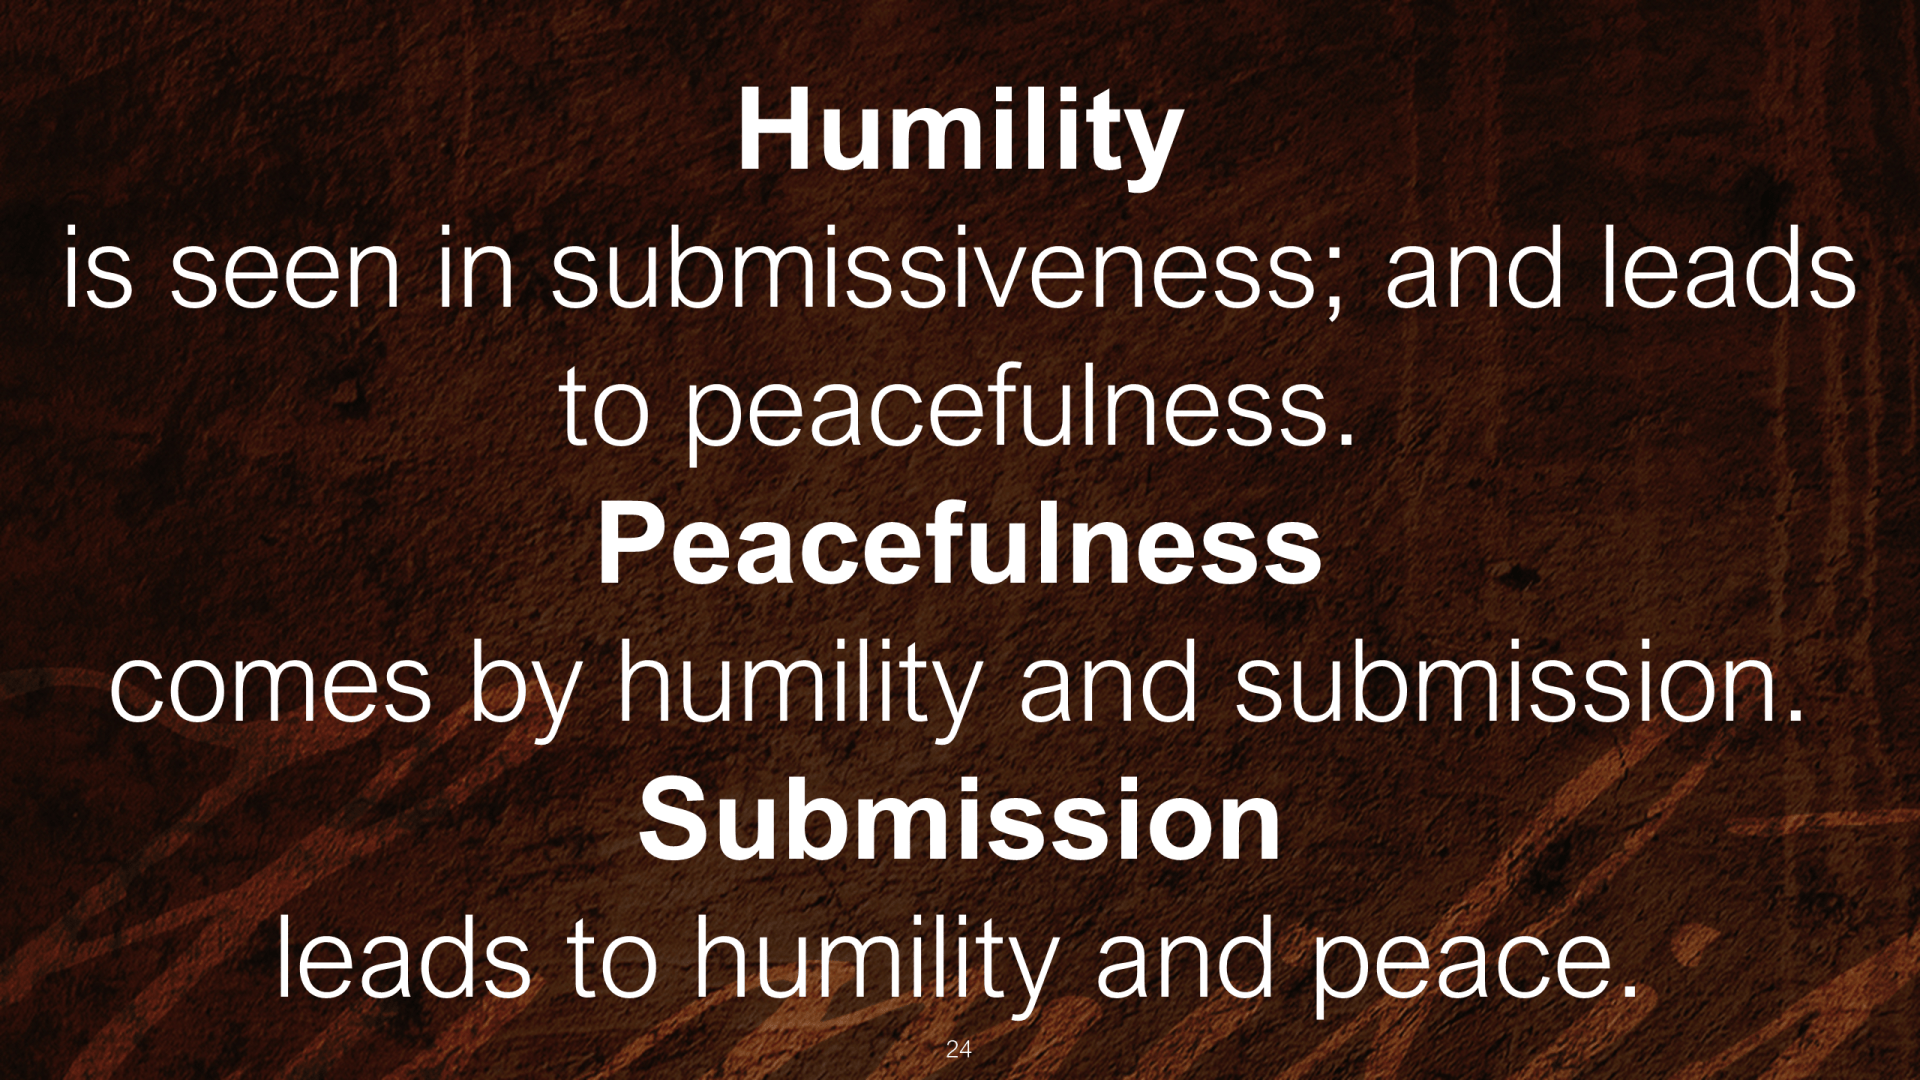 PBH-03 - Be Clothed with Humility (24)